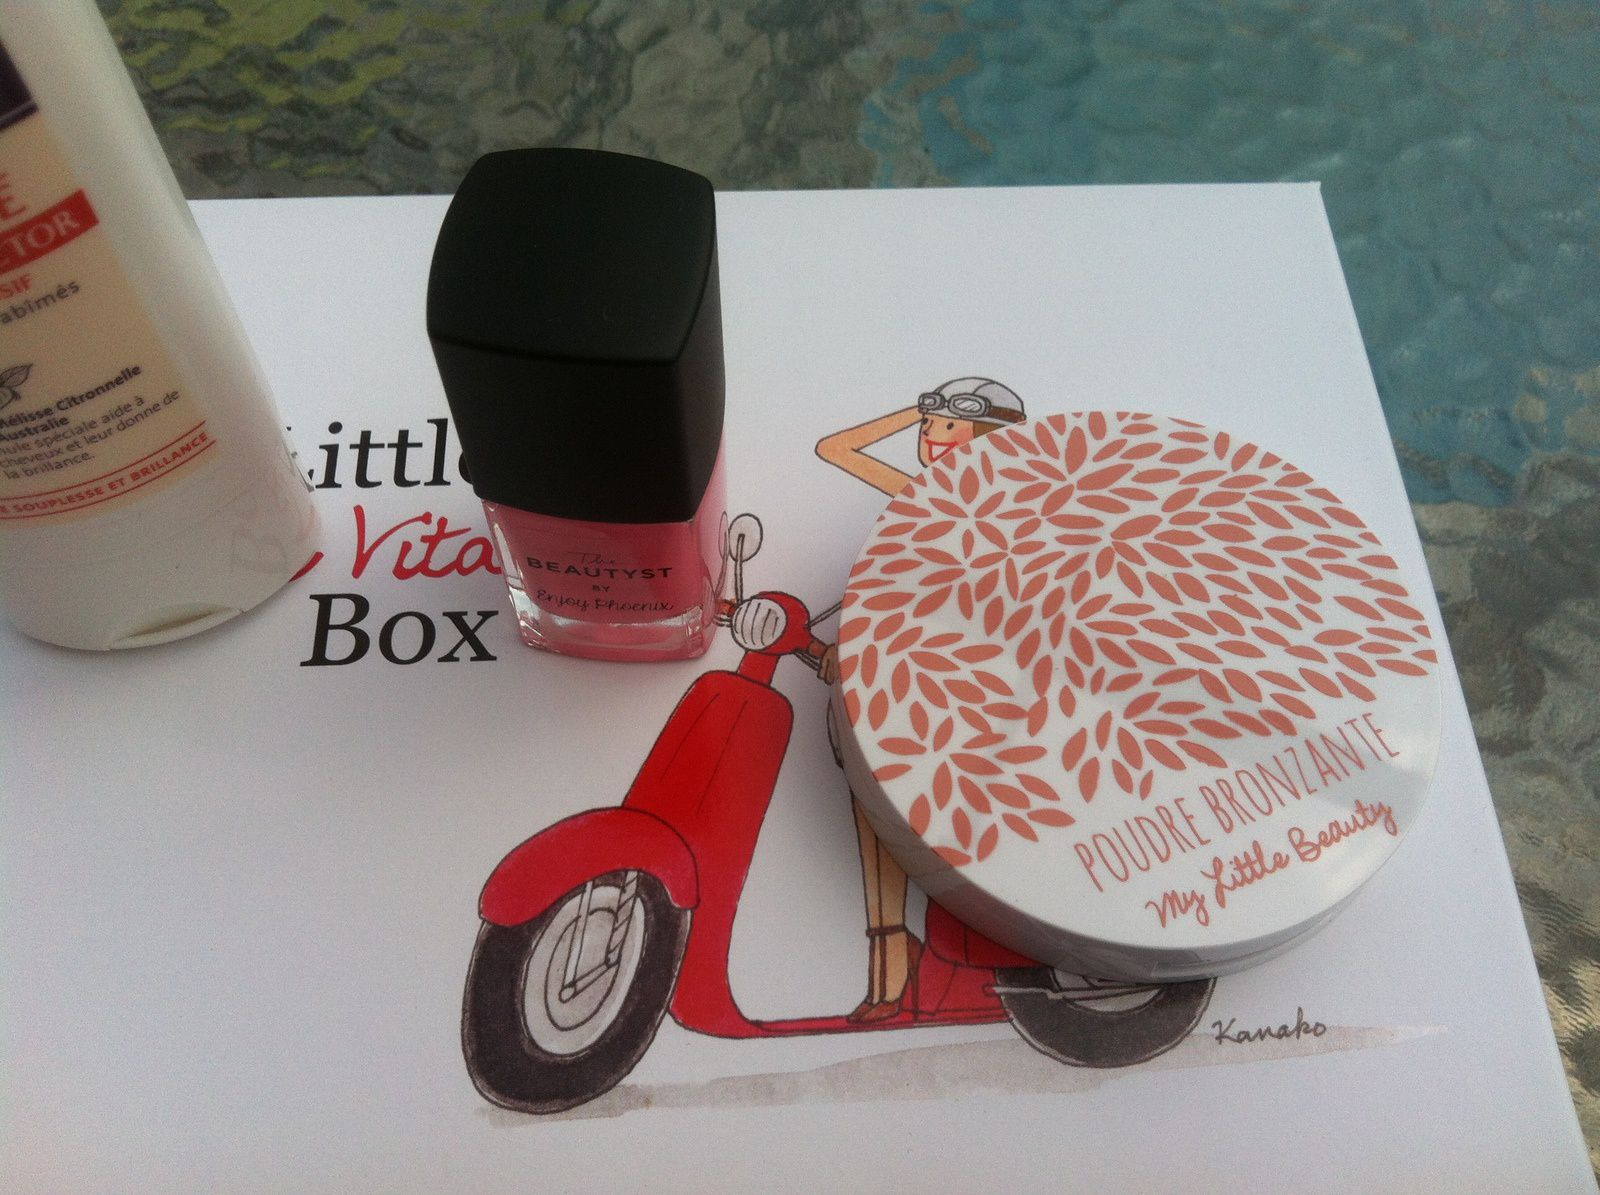 My little dolce vita box de juin